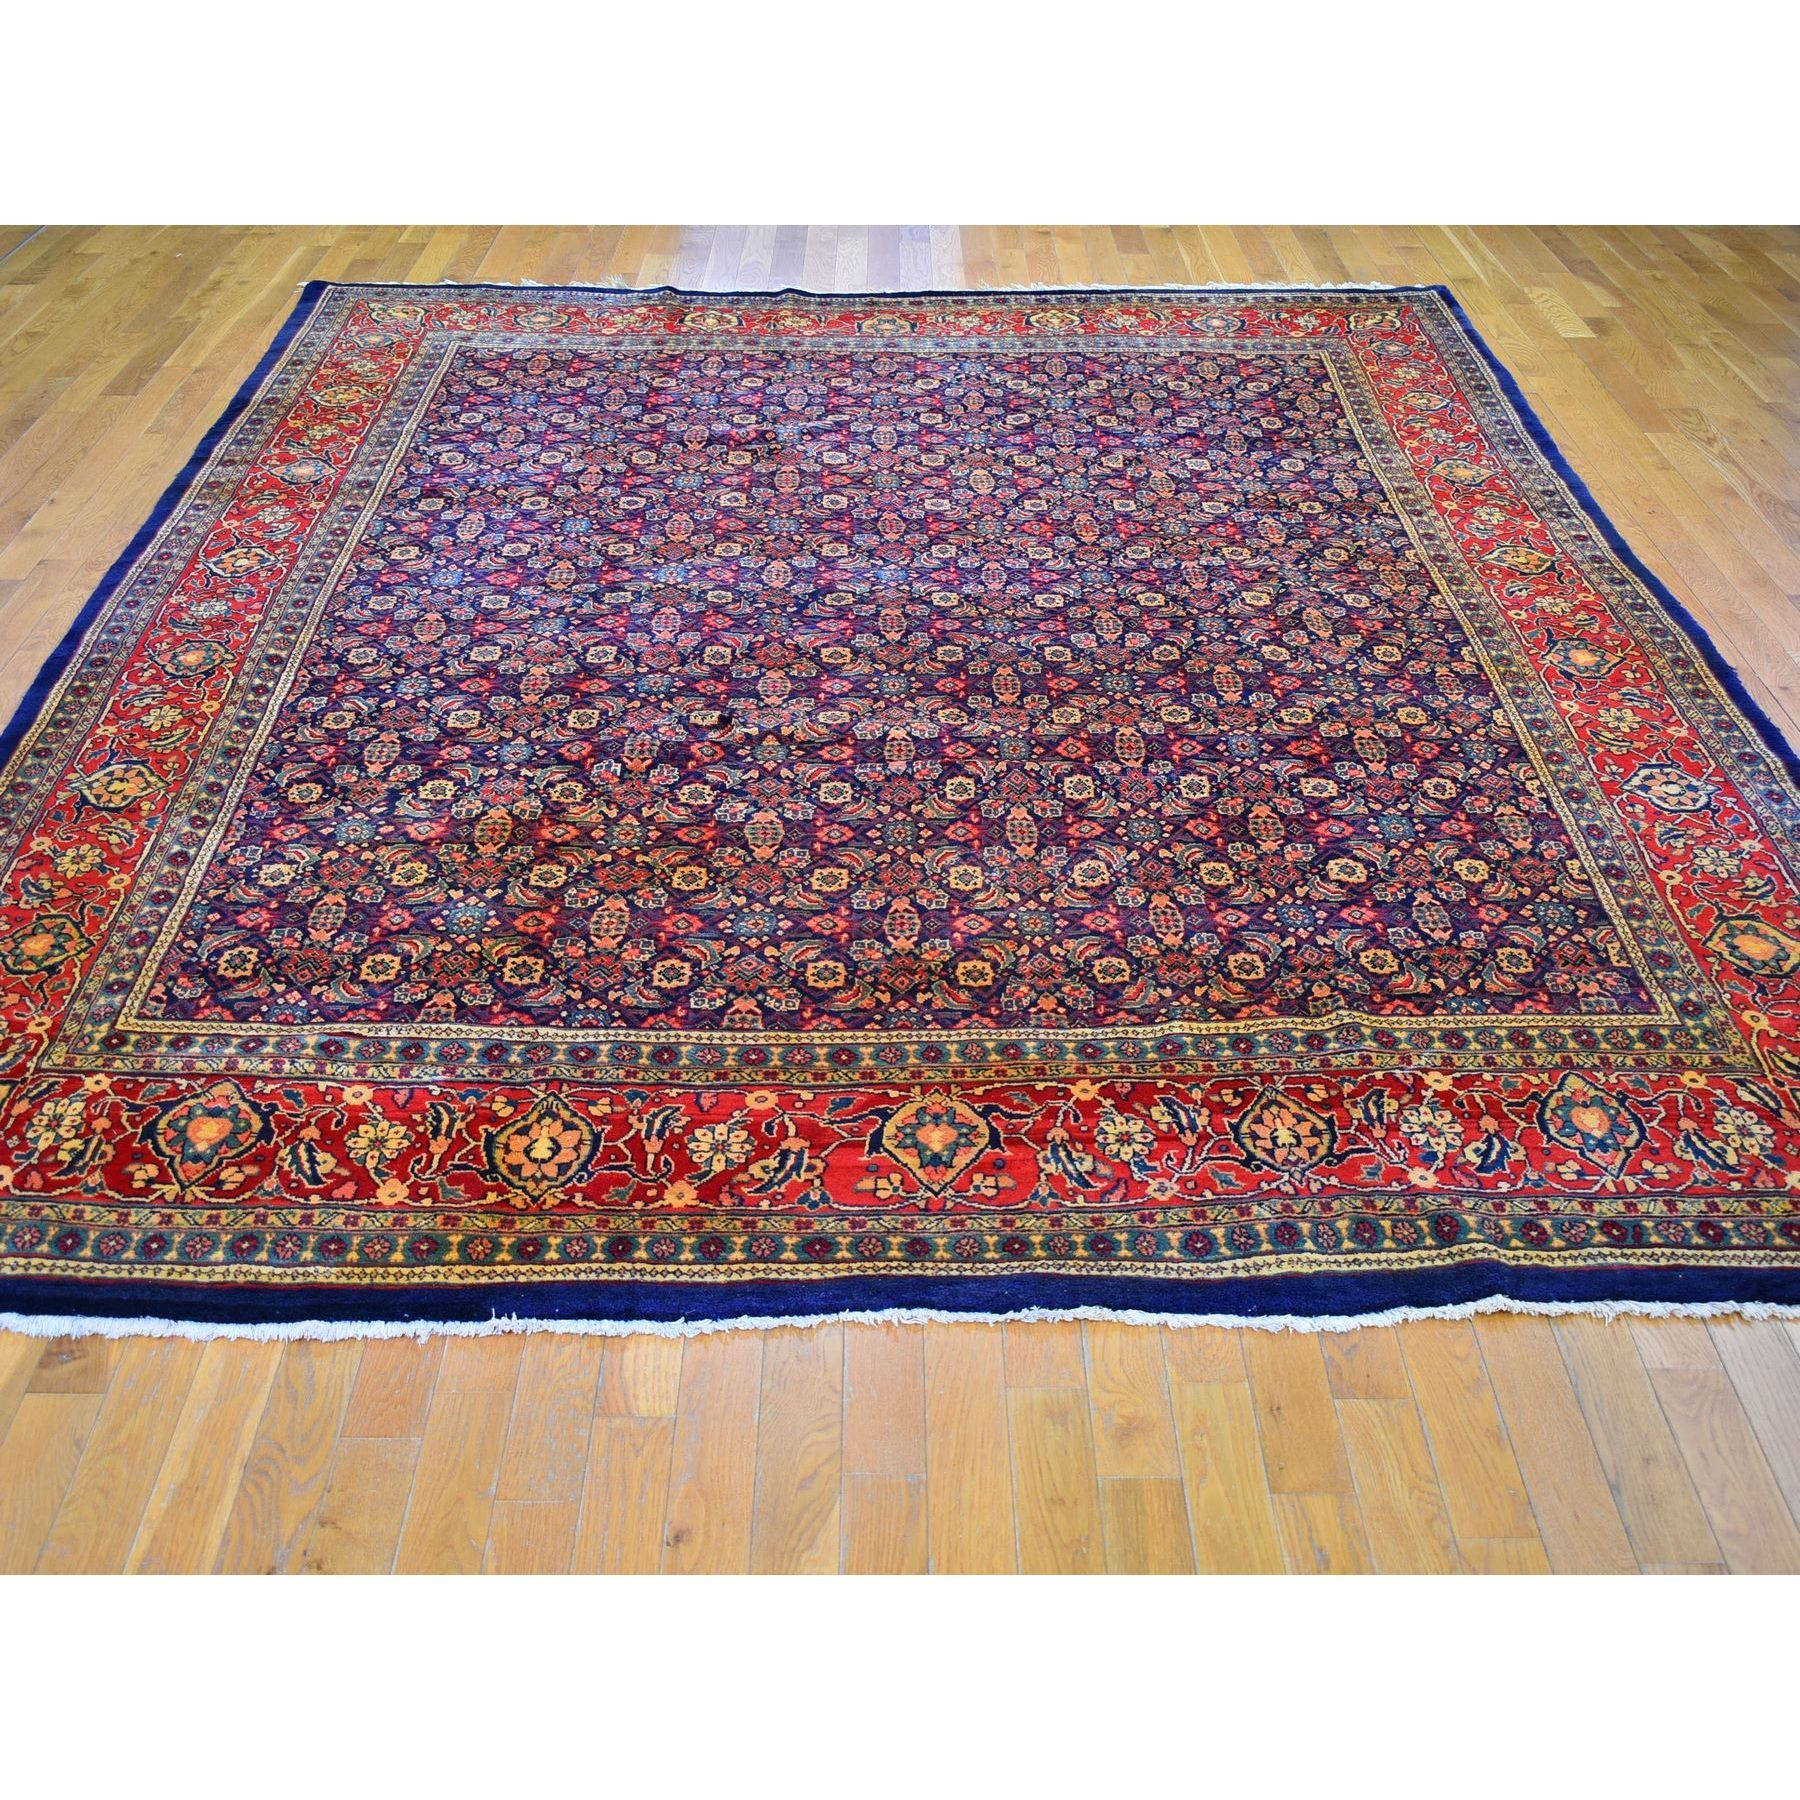 """9'4""""x12'2"""" Navy Blue Herat All Over Fish Design Vintage Persian Mahal Natural Wool Hand Knotted Oriental Rug"""